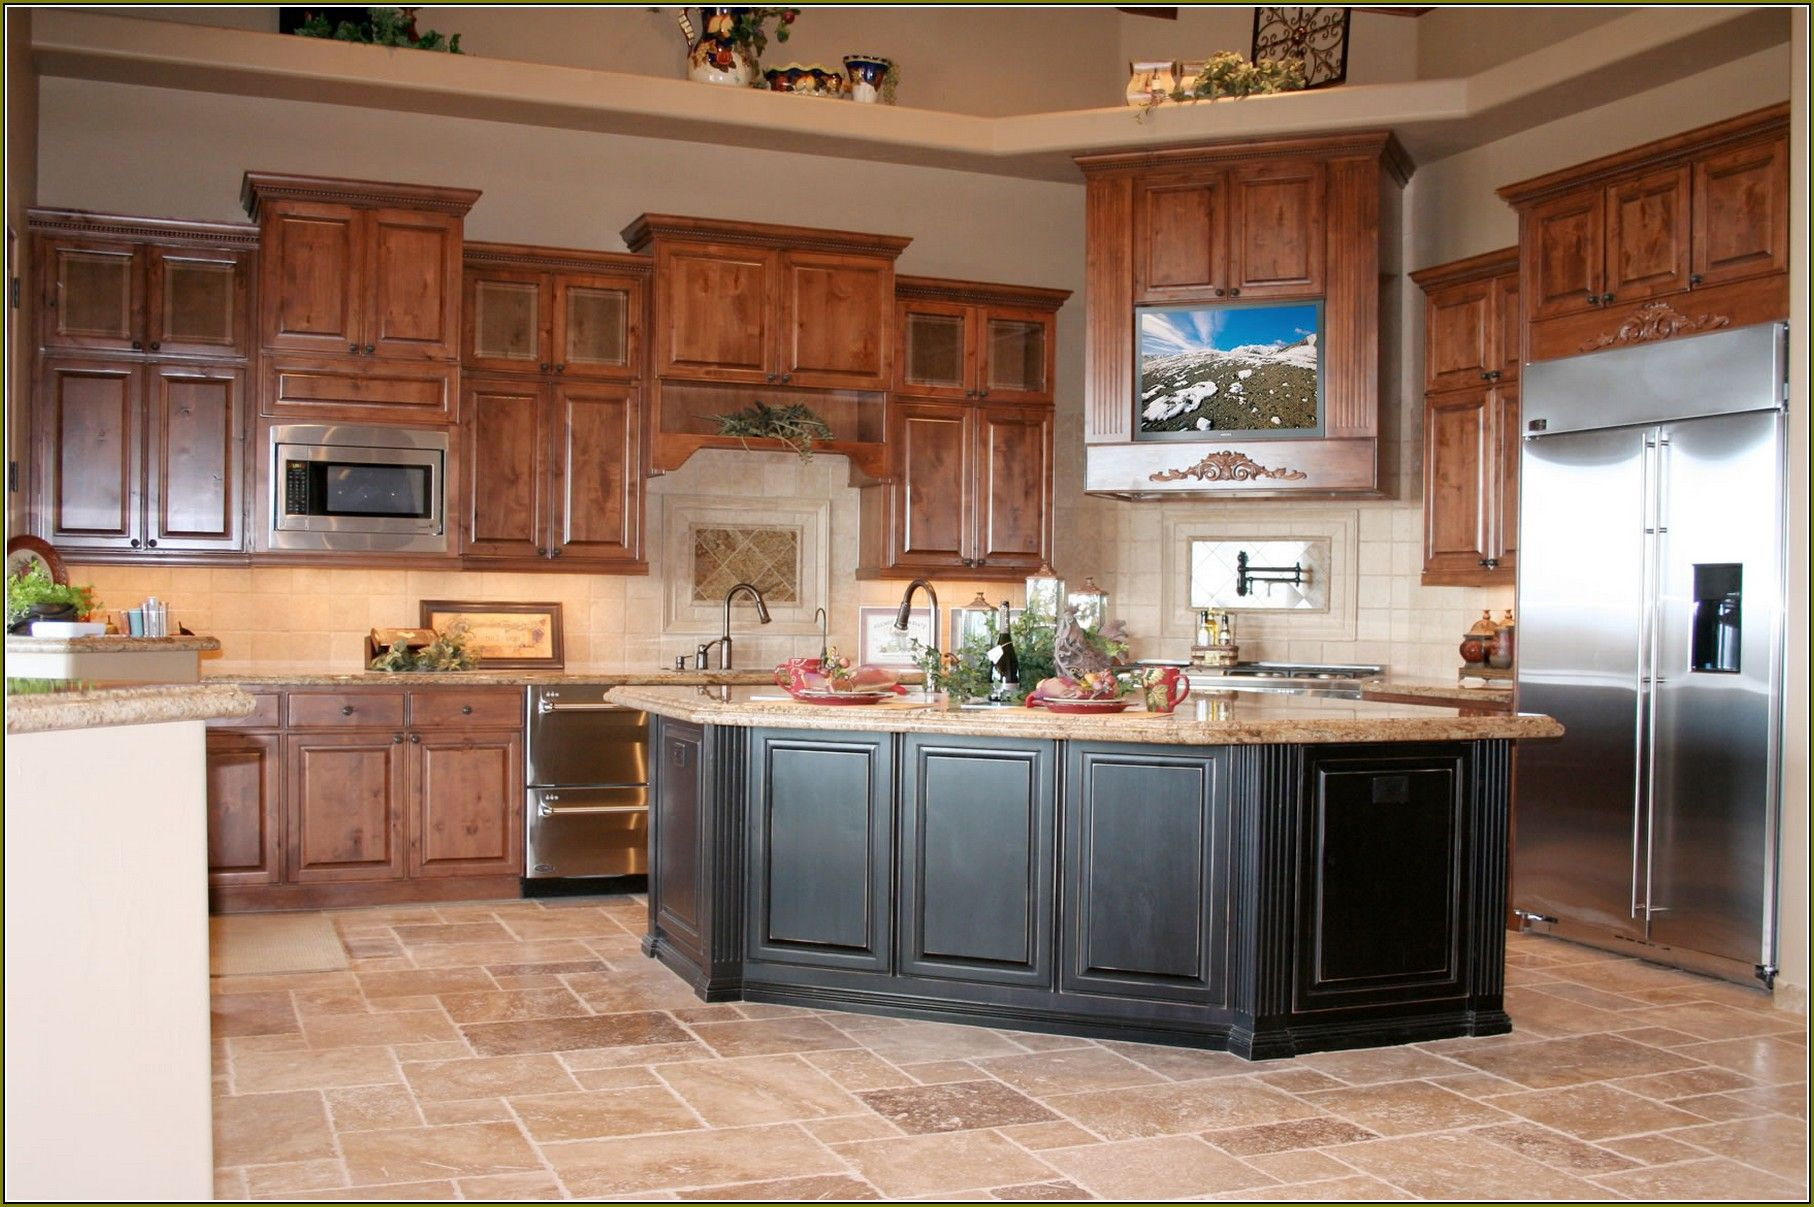 Unique Home Depot Kitchen Cabinets And Countertops The Most Incredible In Addition To Beautiful Cherry Cabinets Kitchen Custom Kitchen Cabinets Cabinet Decor